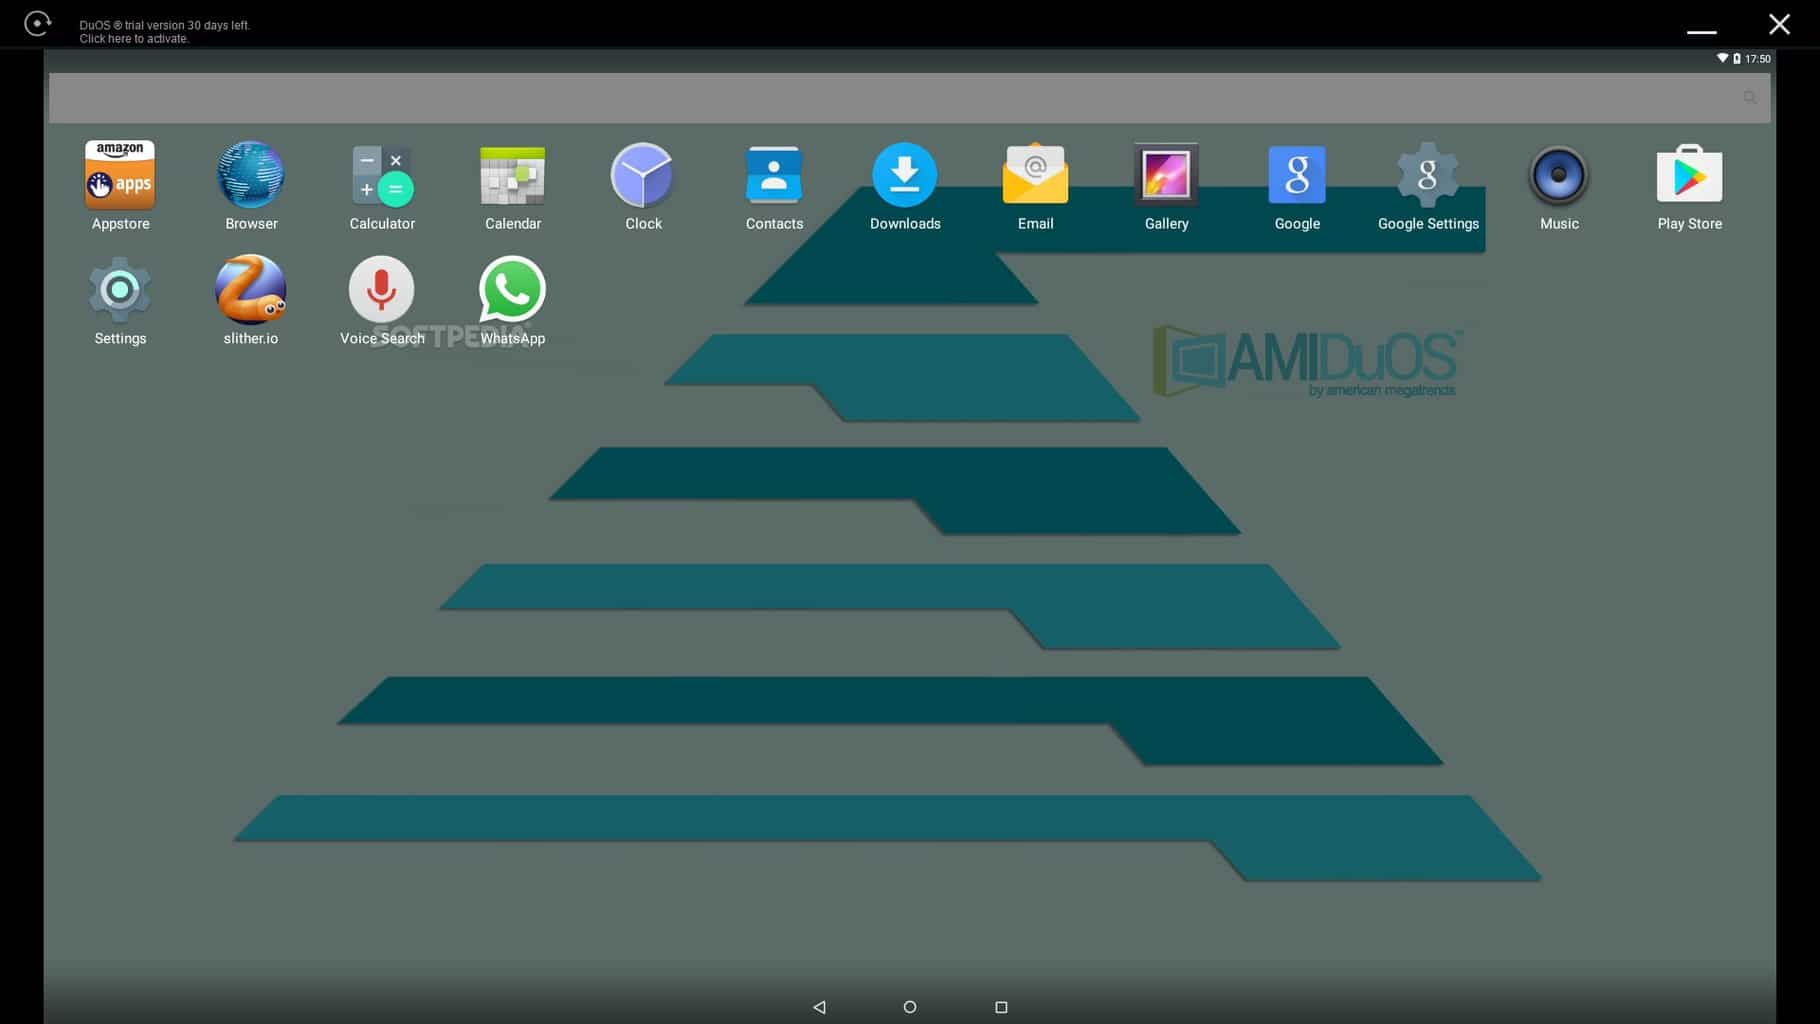 android emulator for windows, android emulator for pc